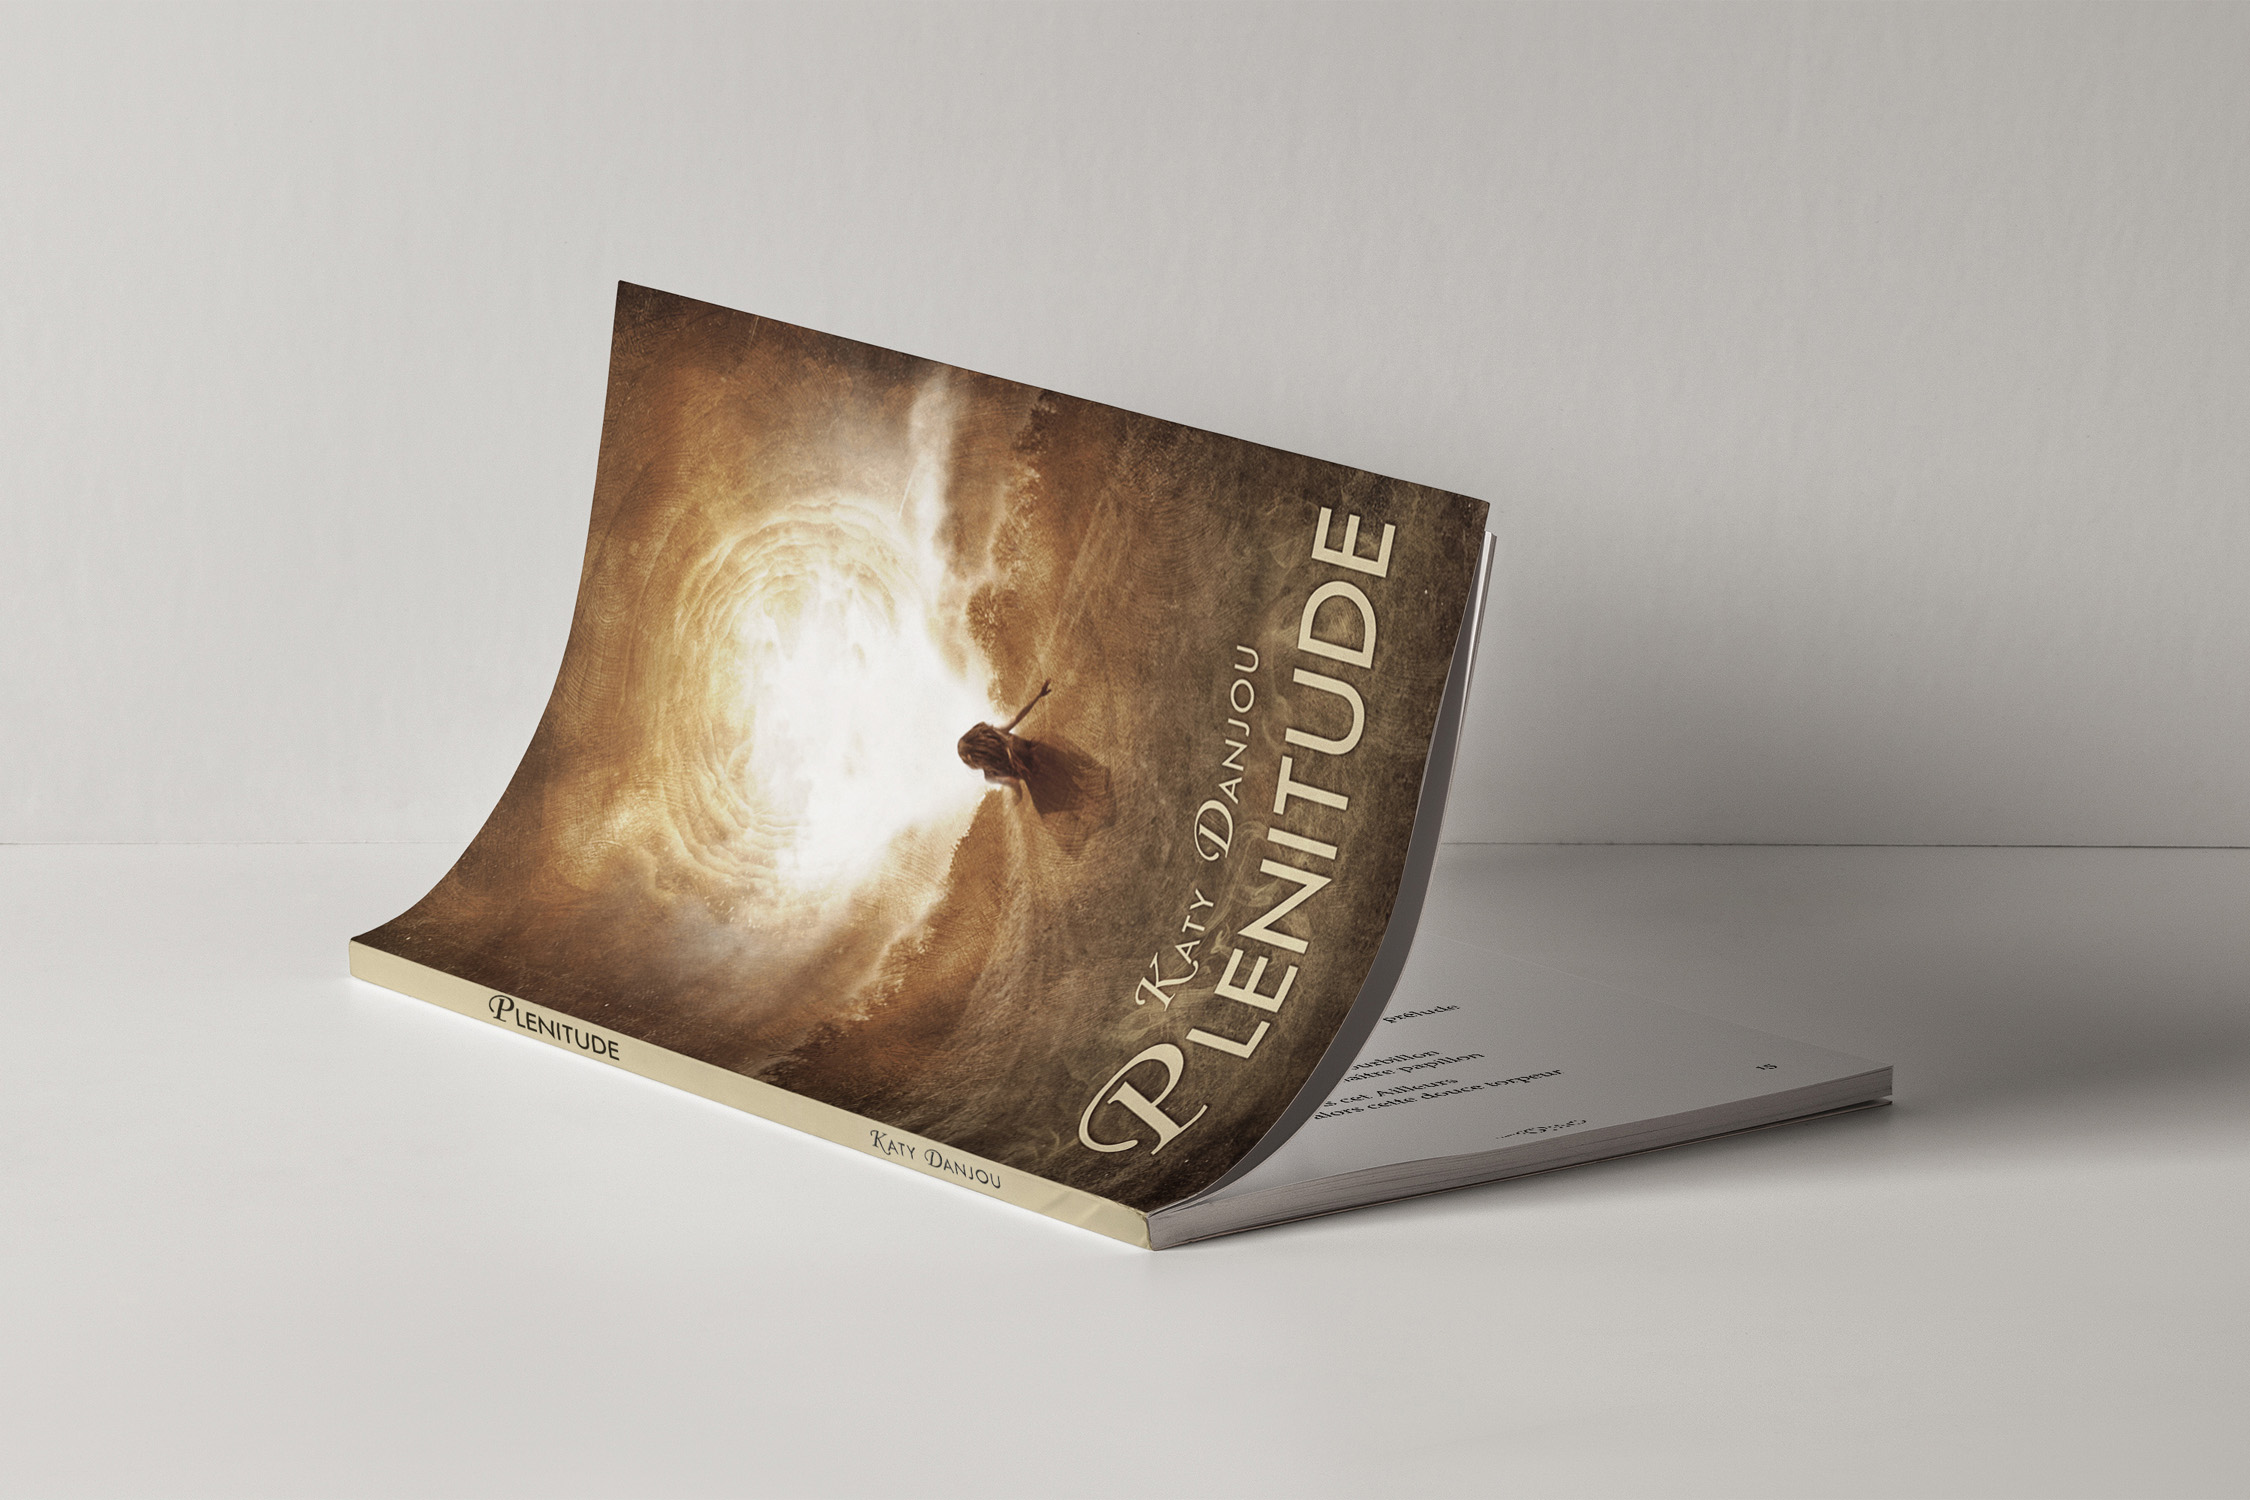 Plenitude by Katy Danjou - Cover Art